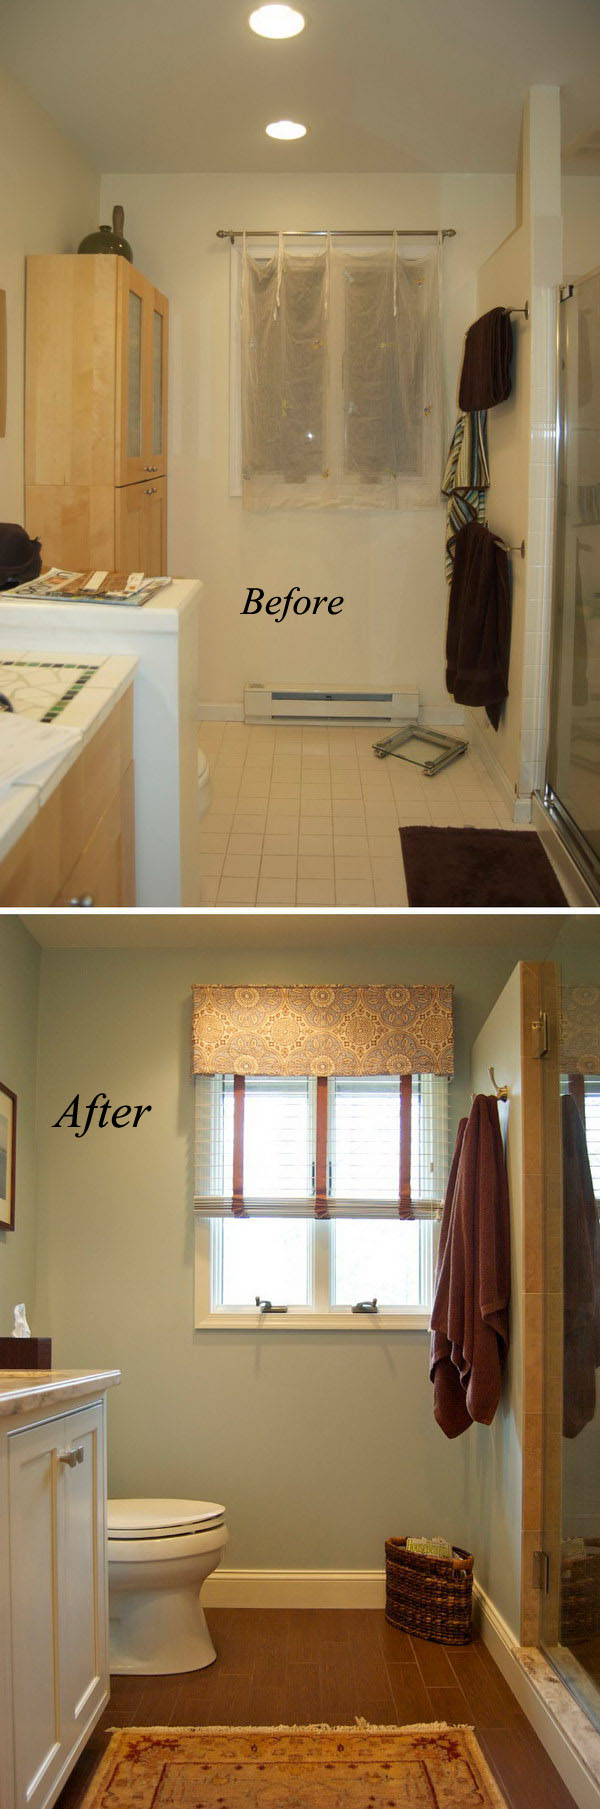 5-6-bathroom-remodel-before-and-after